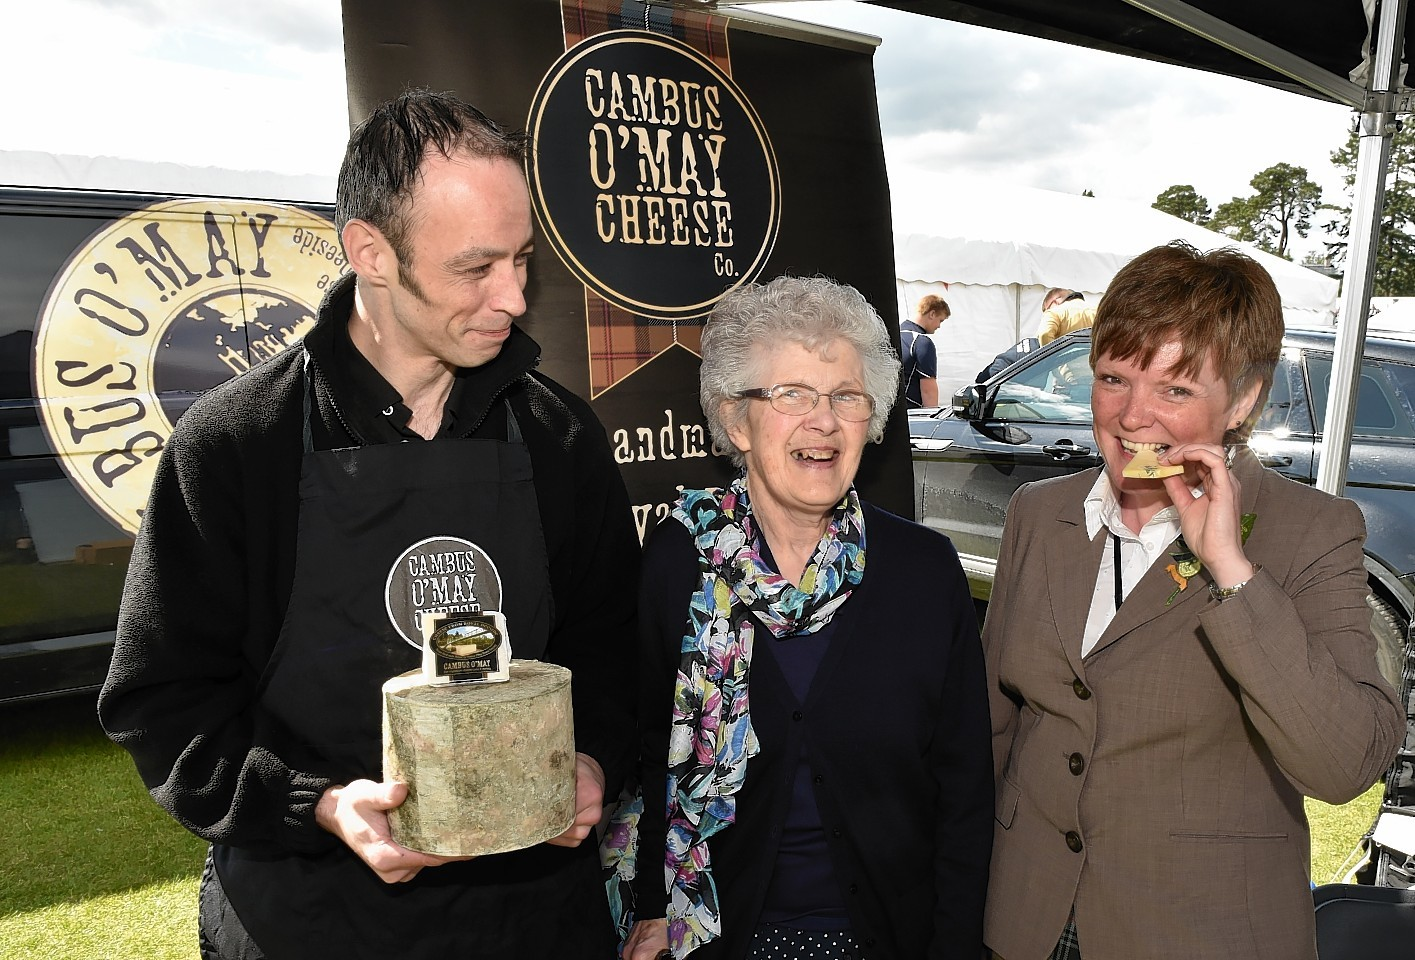 Aboyne secretary Morag McBeath (right) with cheesemaker James Reid and Barbara Reid. Picture by Colin Rennie